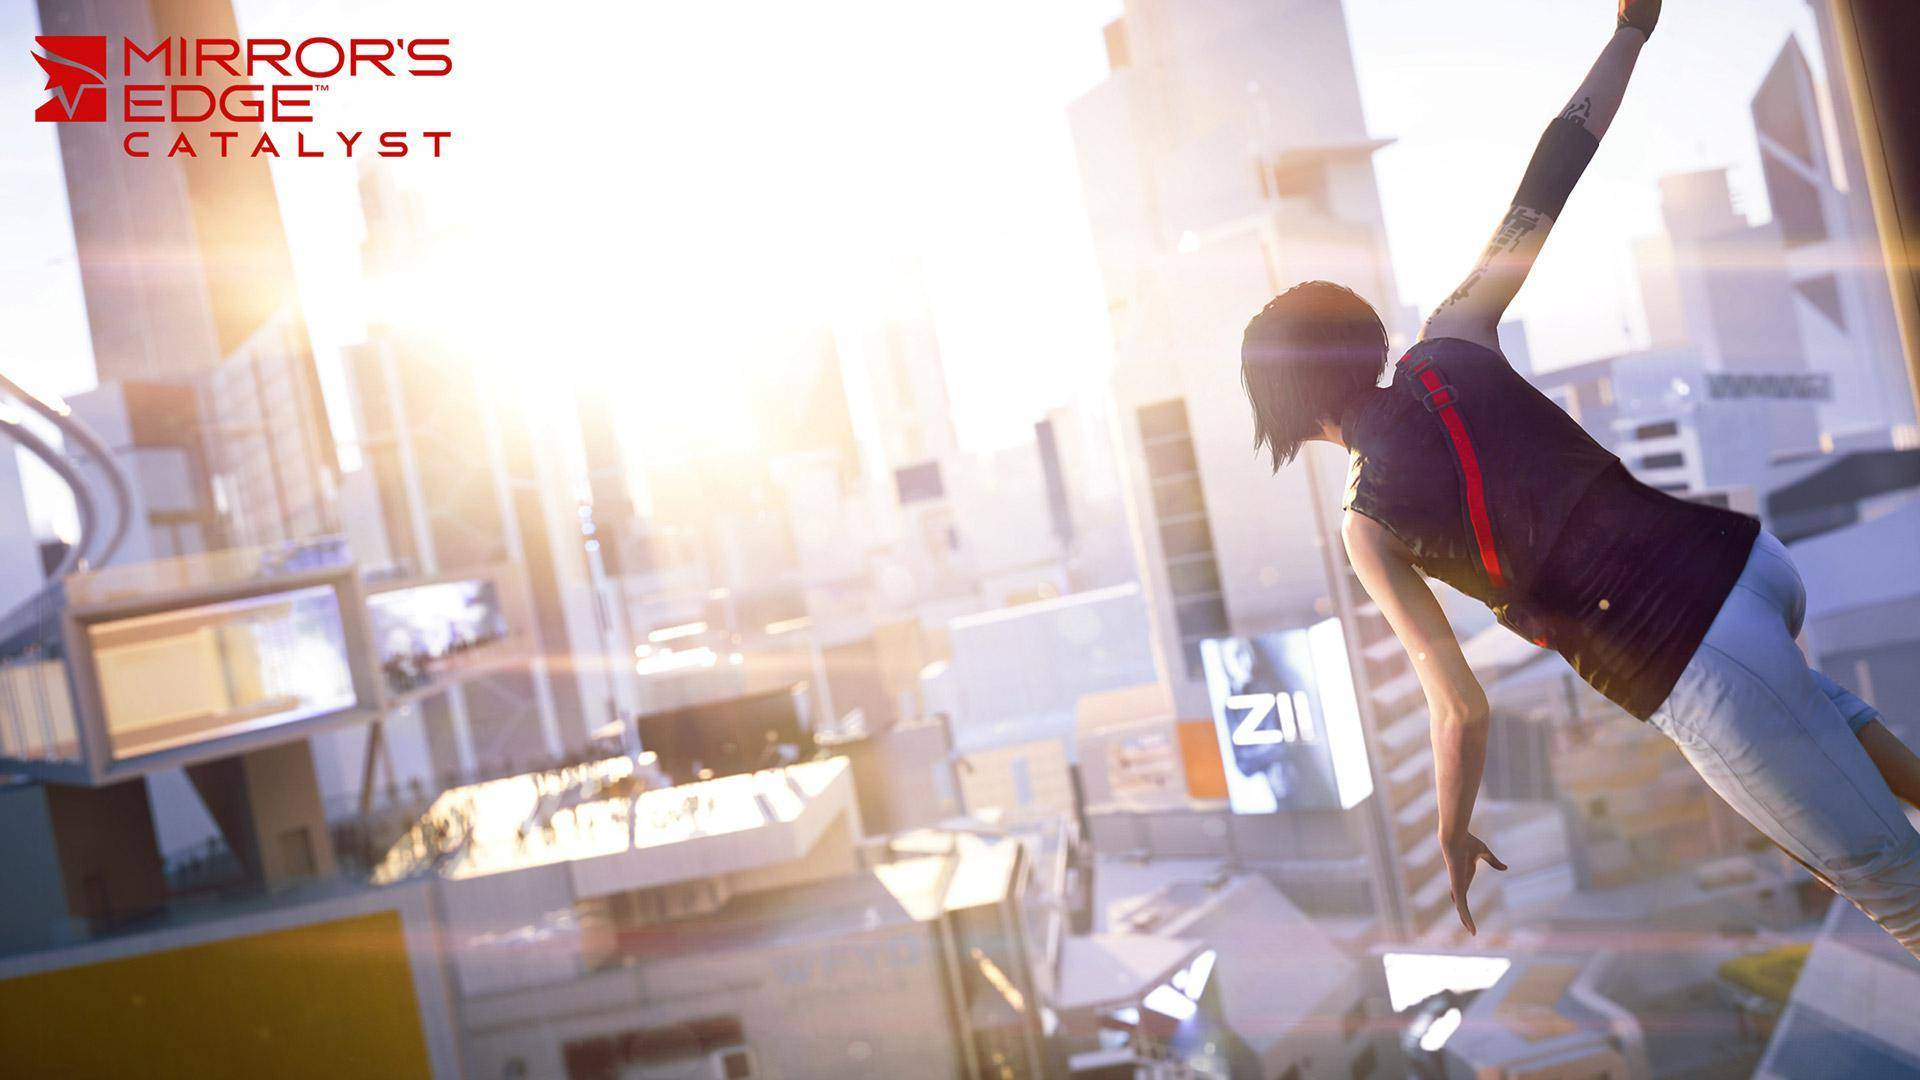 Article title about Mirrors Edge Catalyst